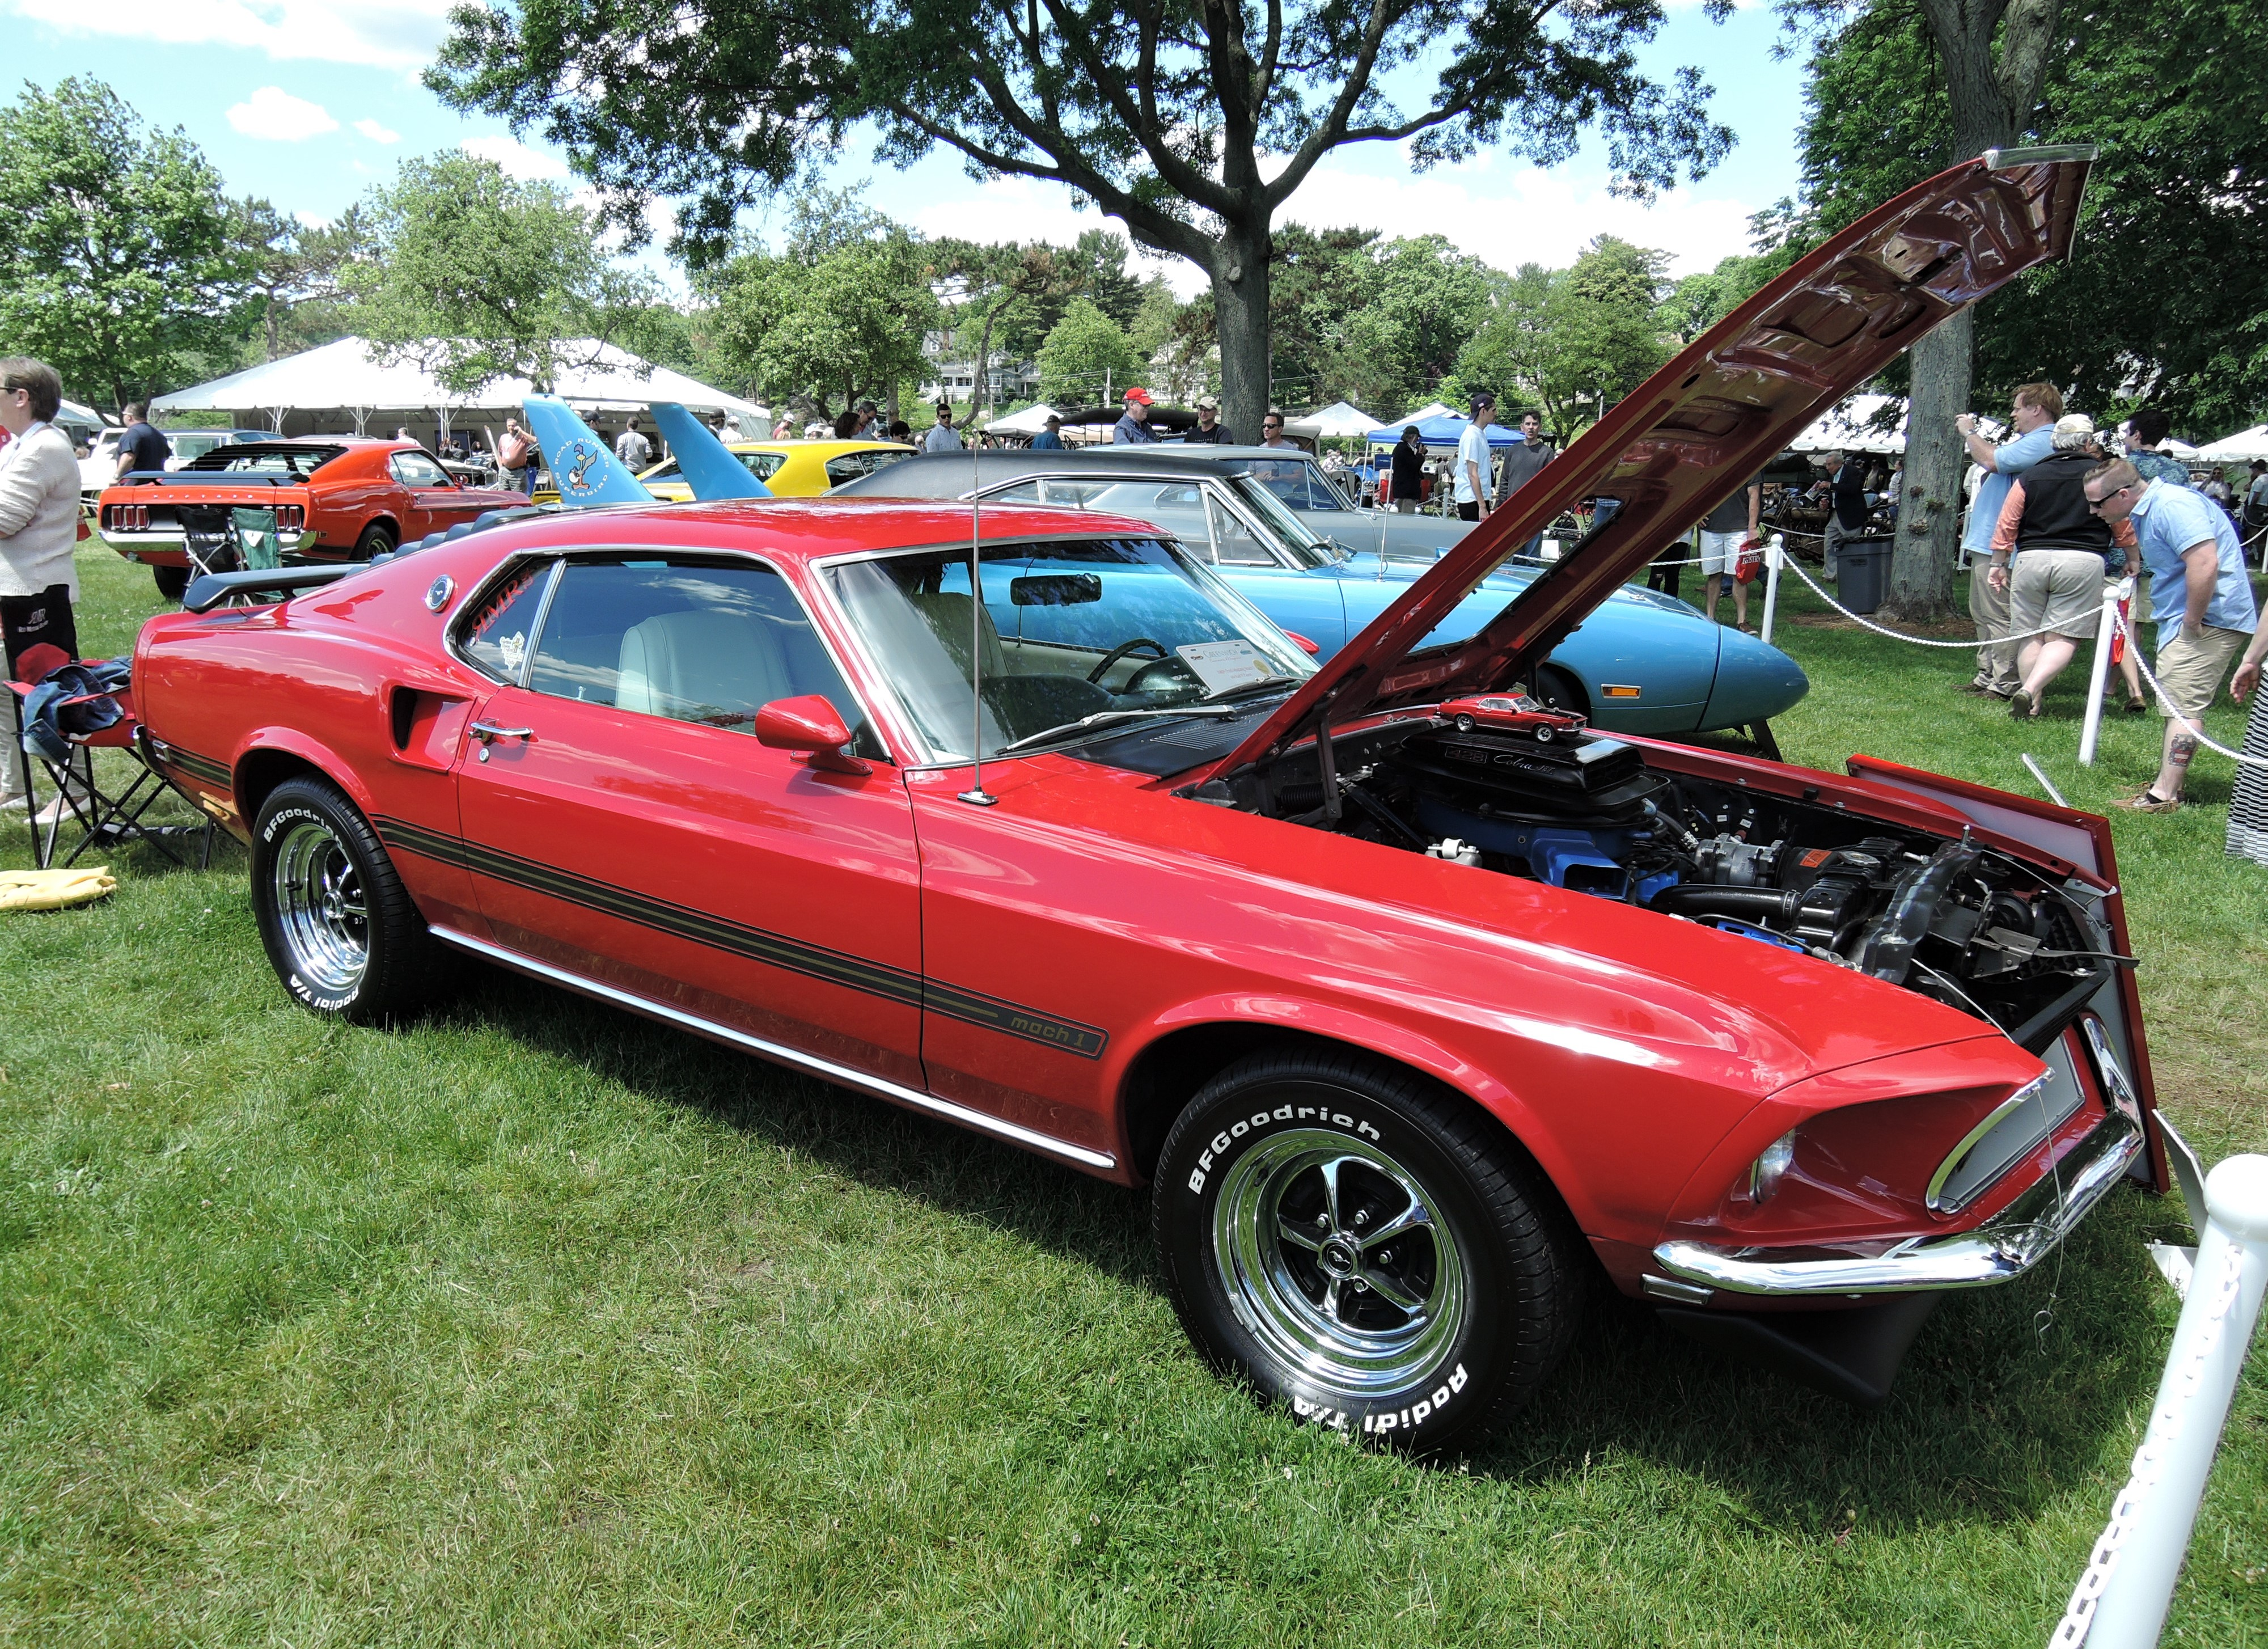 red 1969 Ford Mustang Mach I - Greenwich Concours d'Elegance 2017